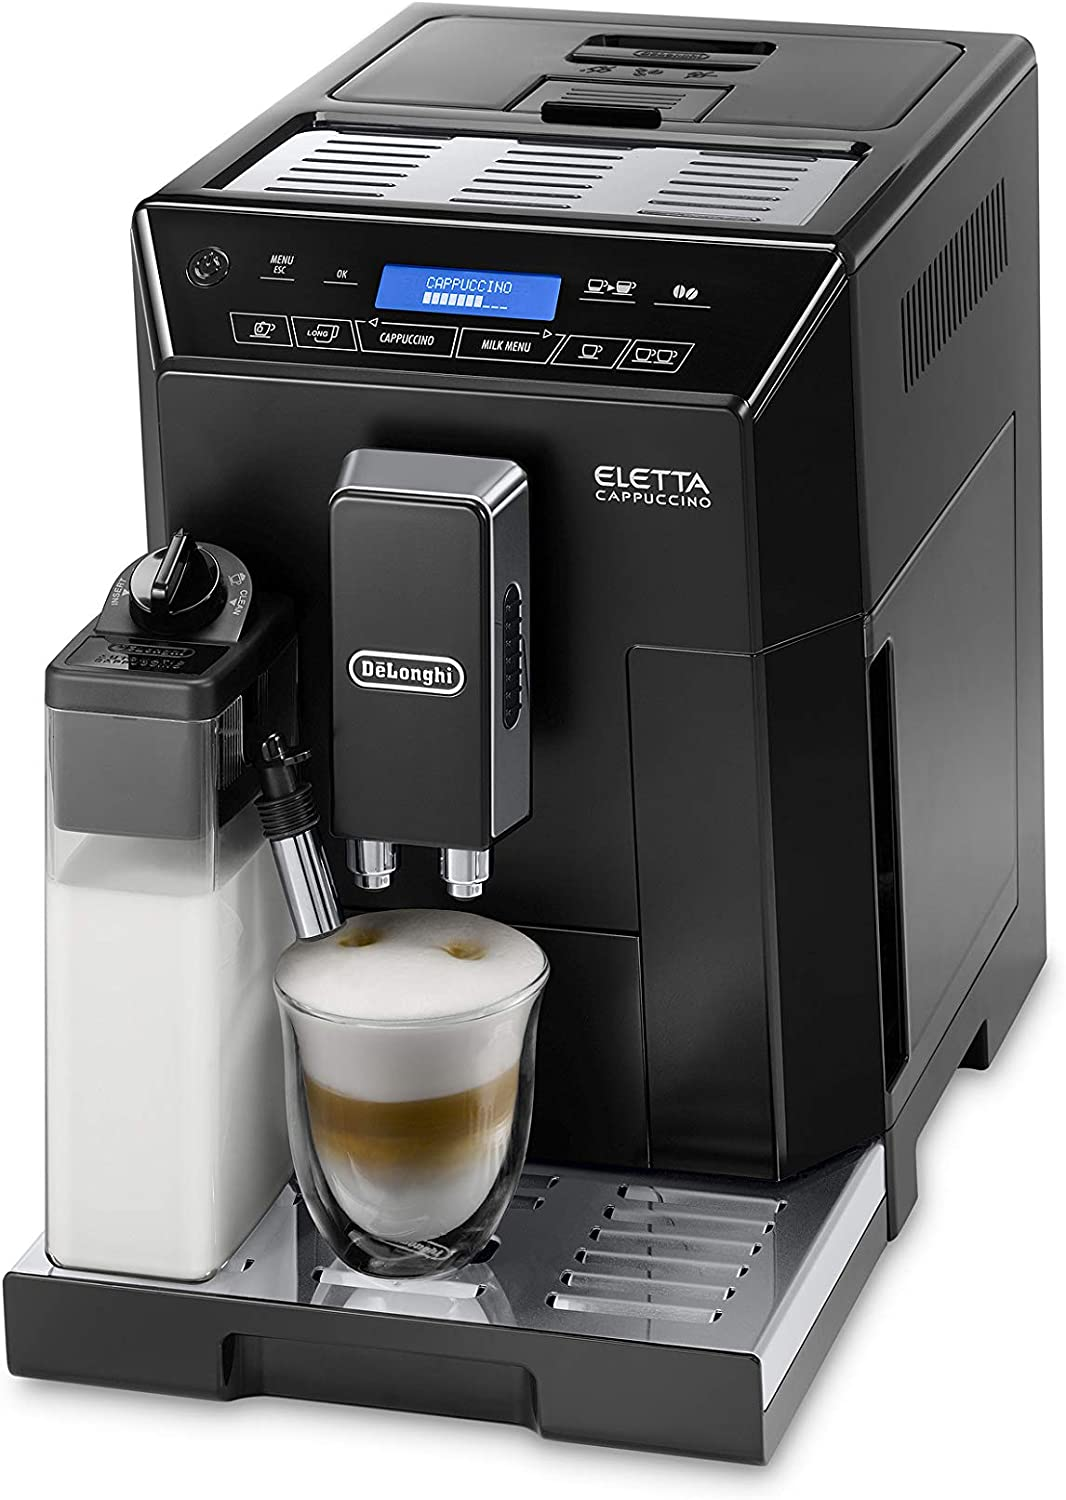 Delonghi super-automatic espresso coffee machine with an adjustable grinder, double boiler, milk frothermaker for brewing espresso, cappuccino, latte, macchiato Flat white. ECAM44660B Eletta